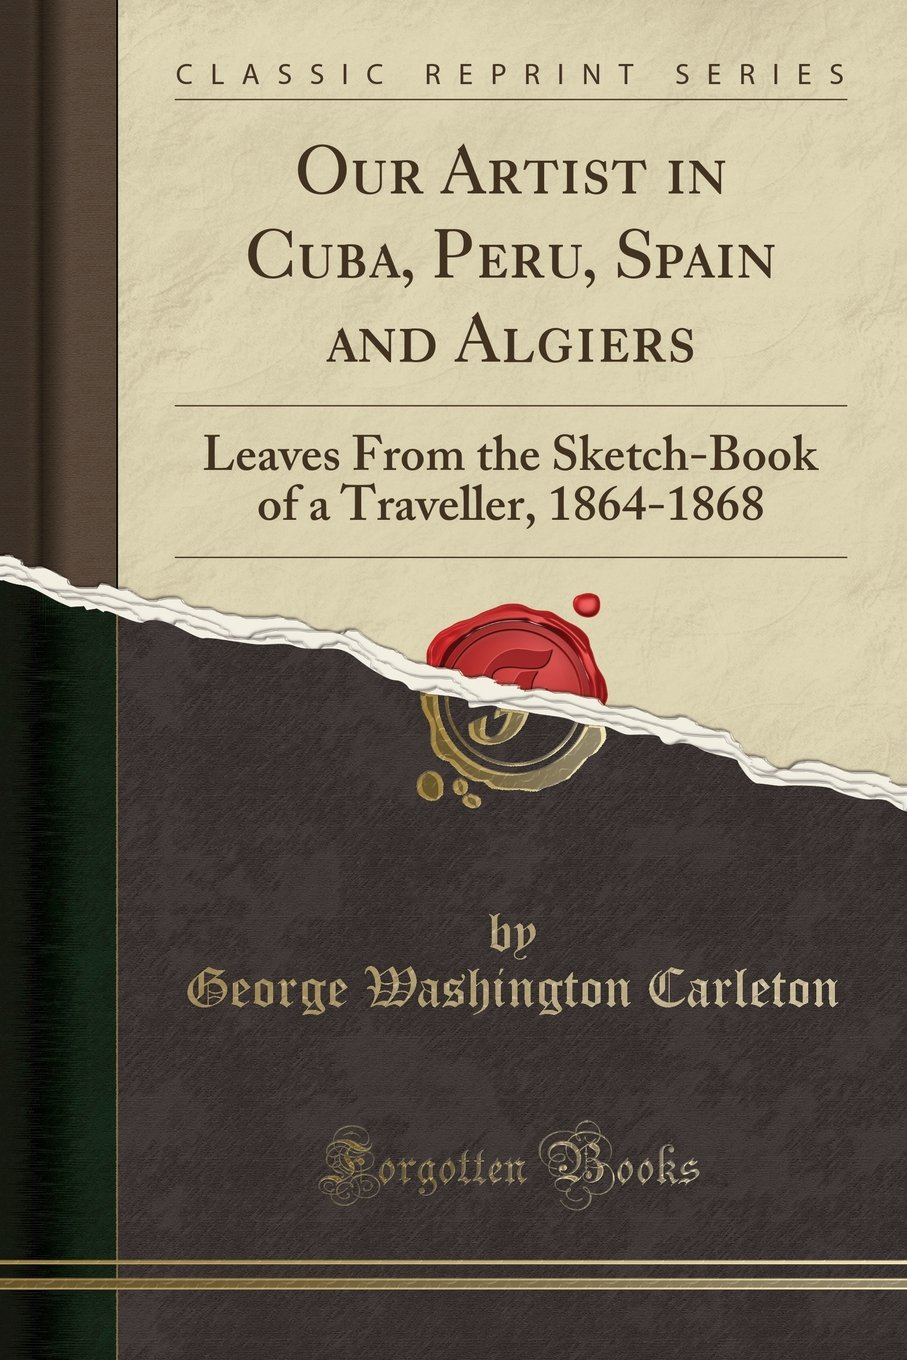 Our Artist in Cuba, Peru, Spain and Algiers: Leaves From the Sketch-Book of a Traveller, 1864-1868 (Classic Reprint) ebook